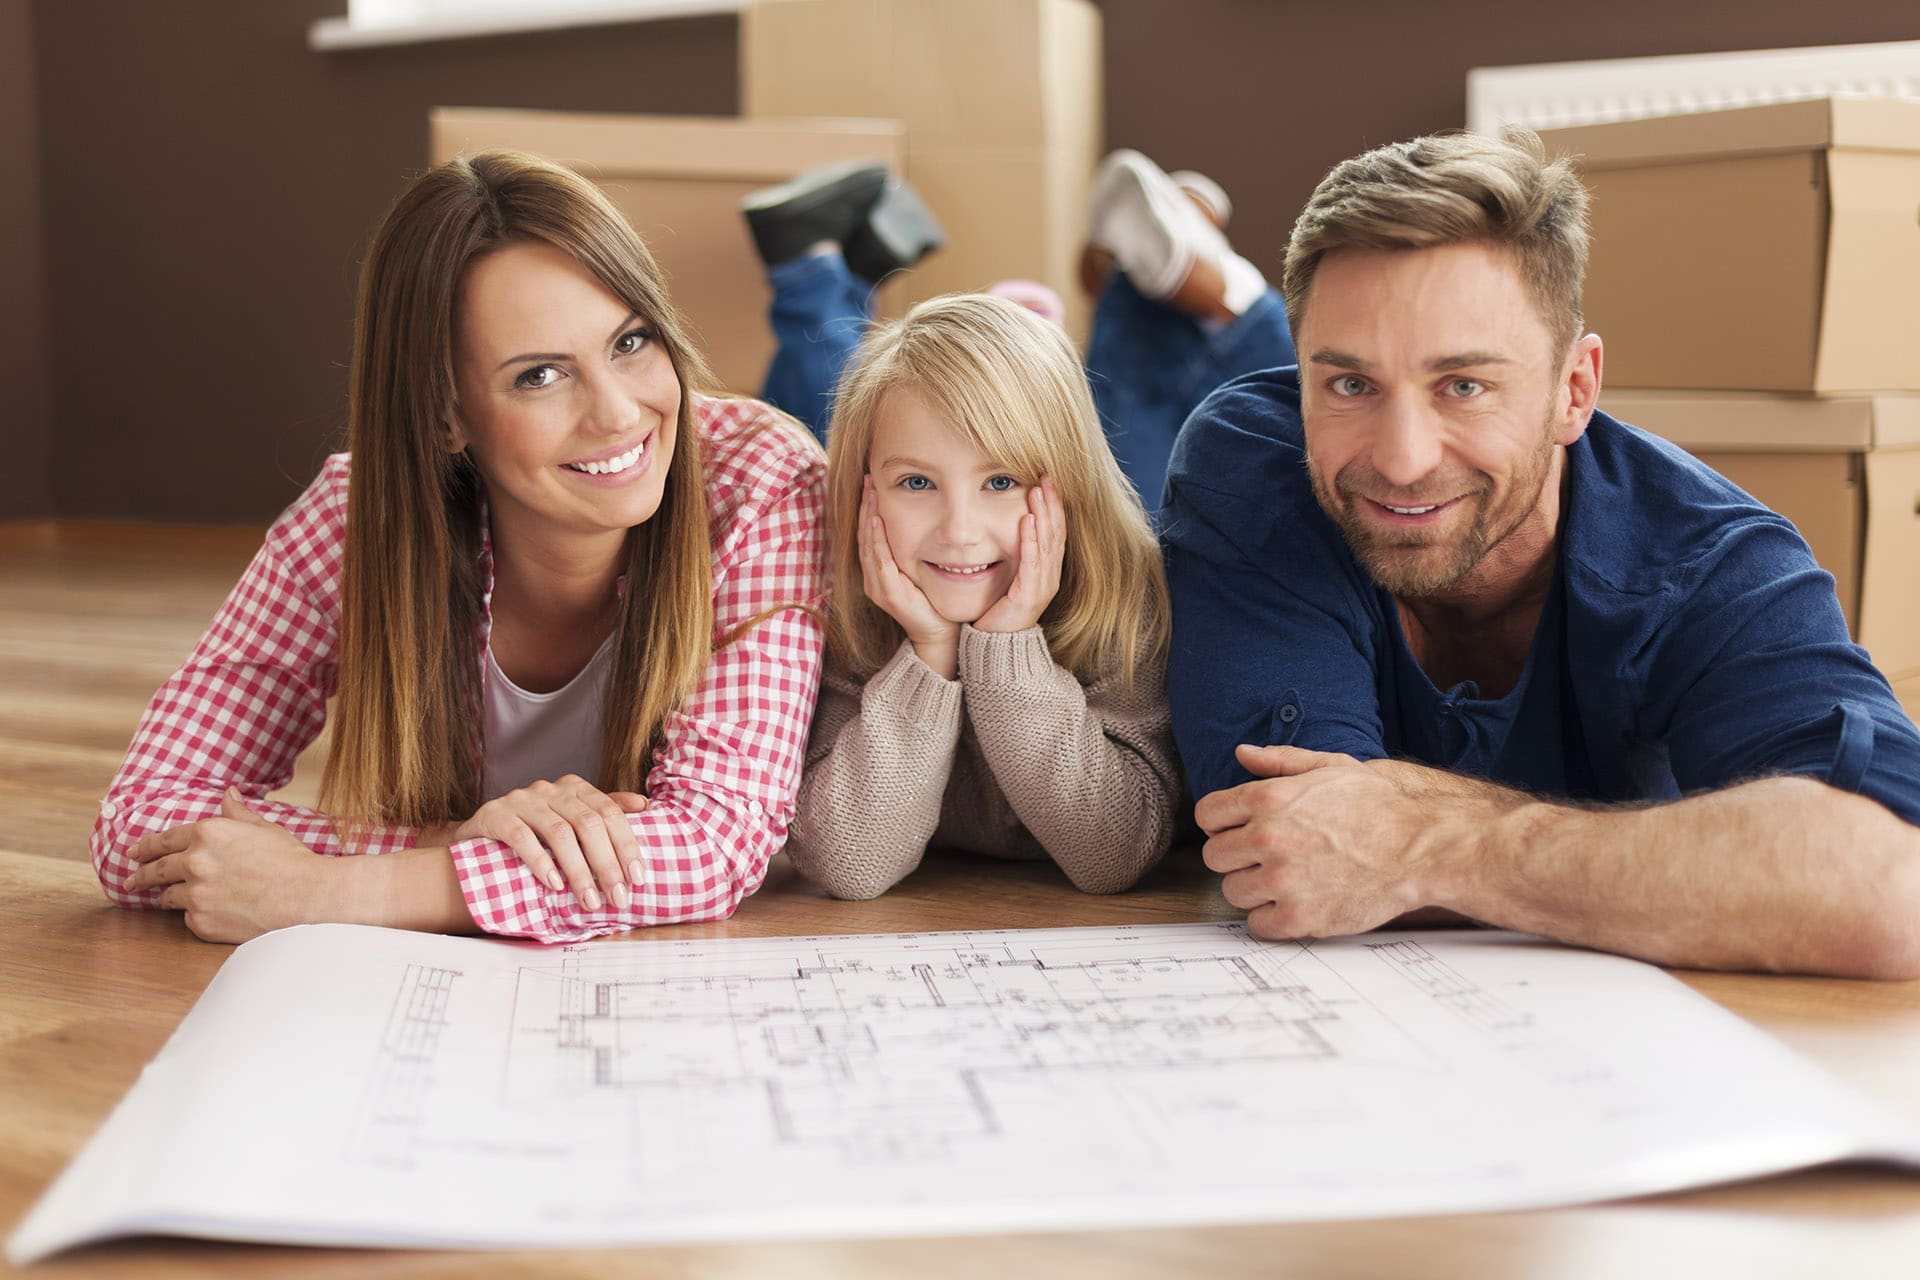 Happy family planning their new apartment